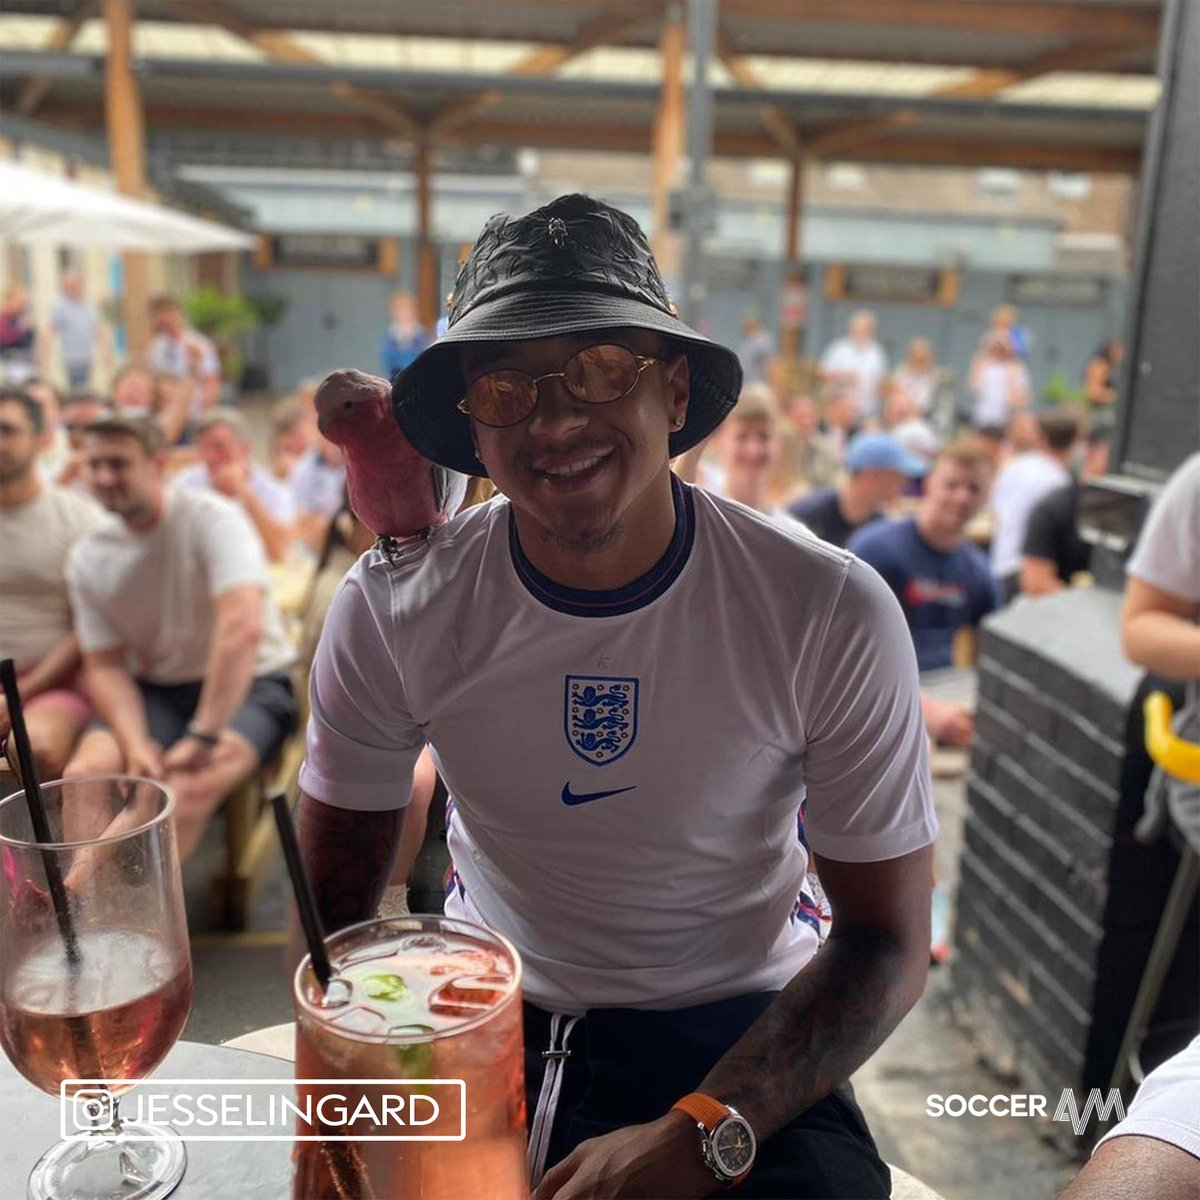 Jesse Lingard - England shirt on, parrot on shoulder and watching on from a beer garden 😍 https://t.co/PjLpWHmCF7